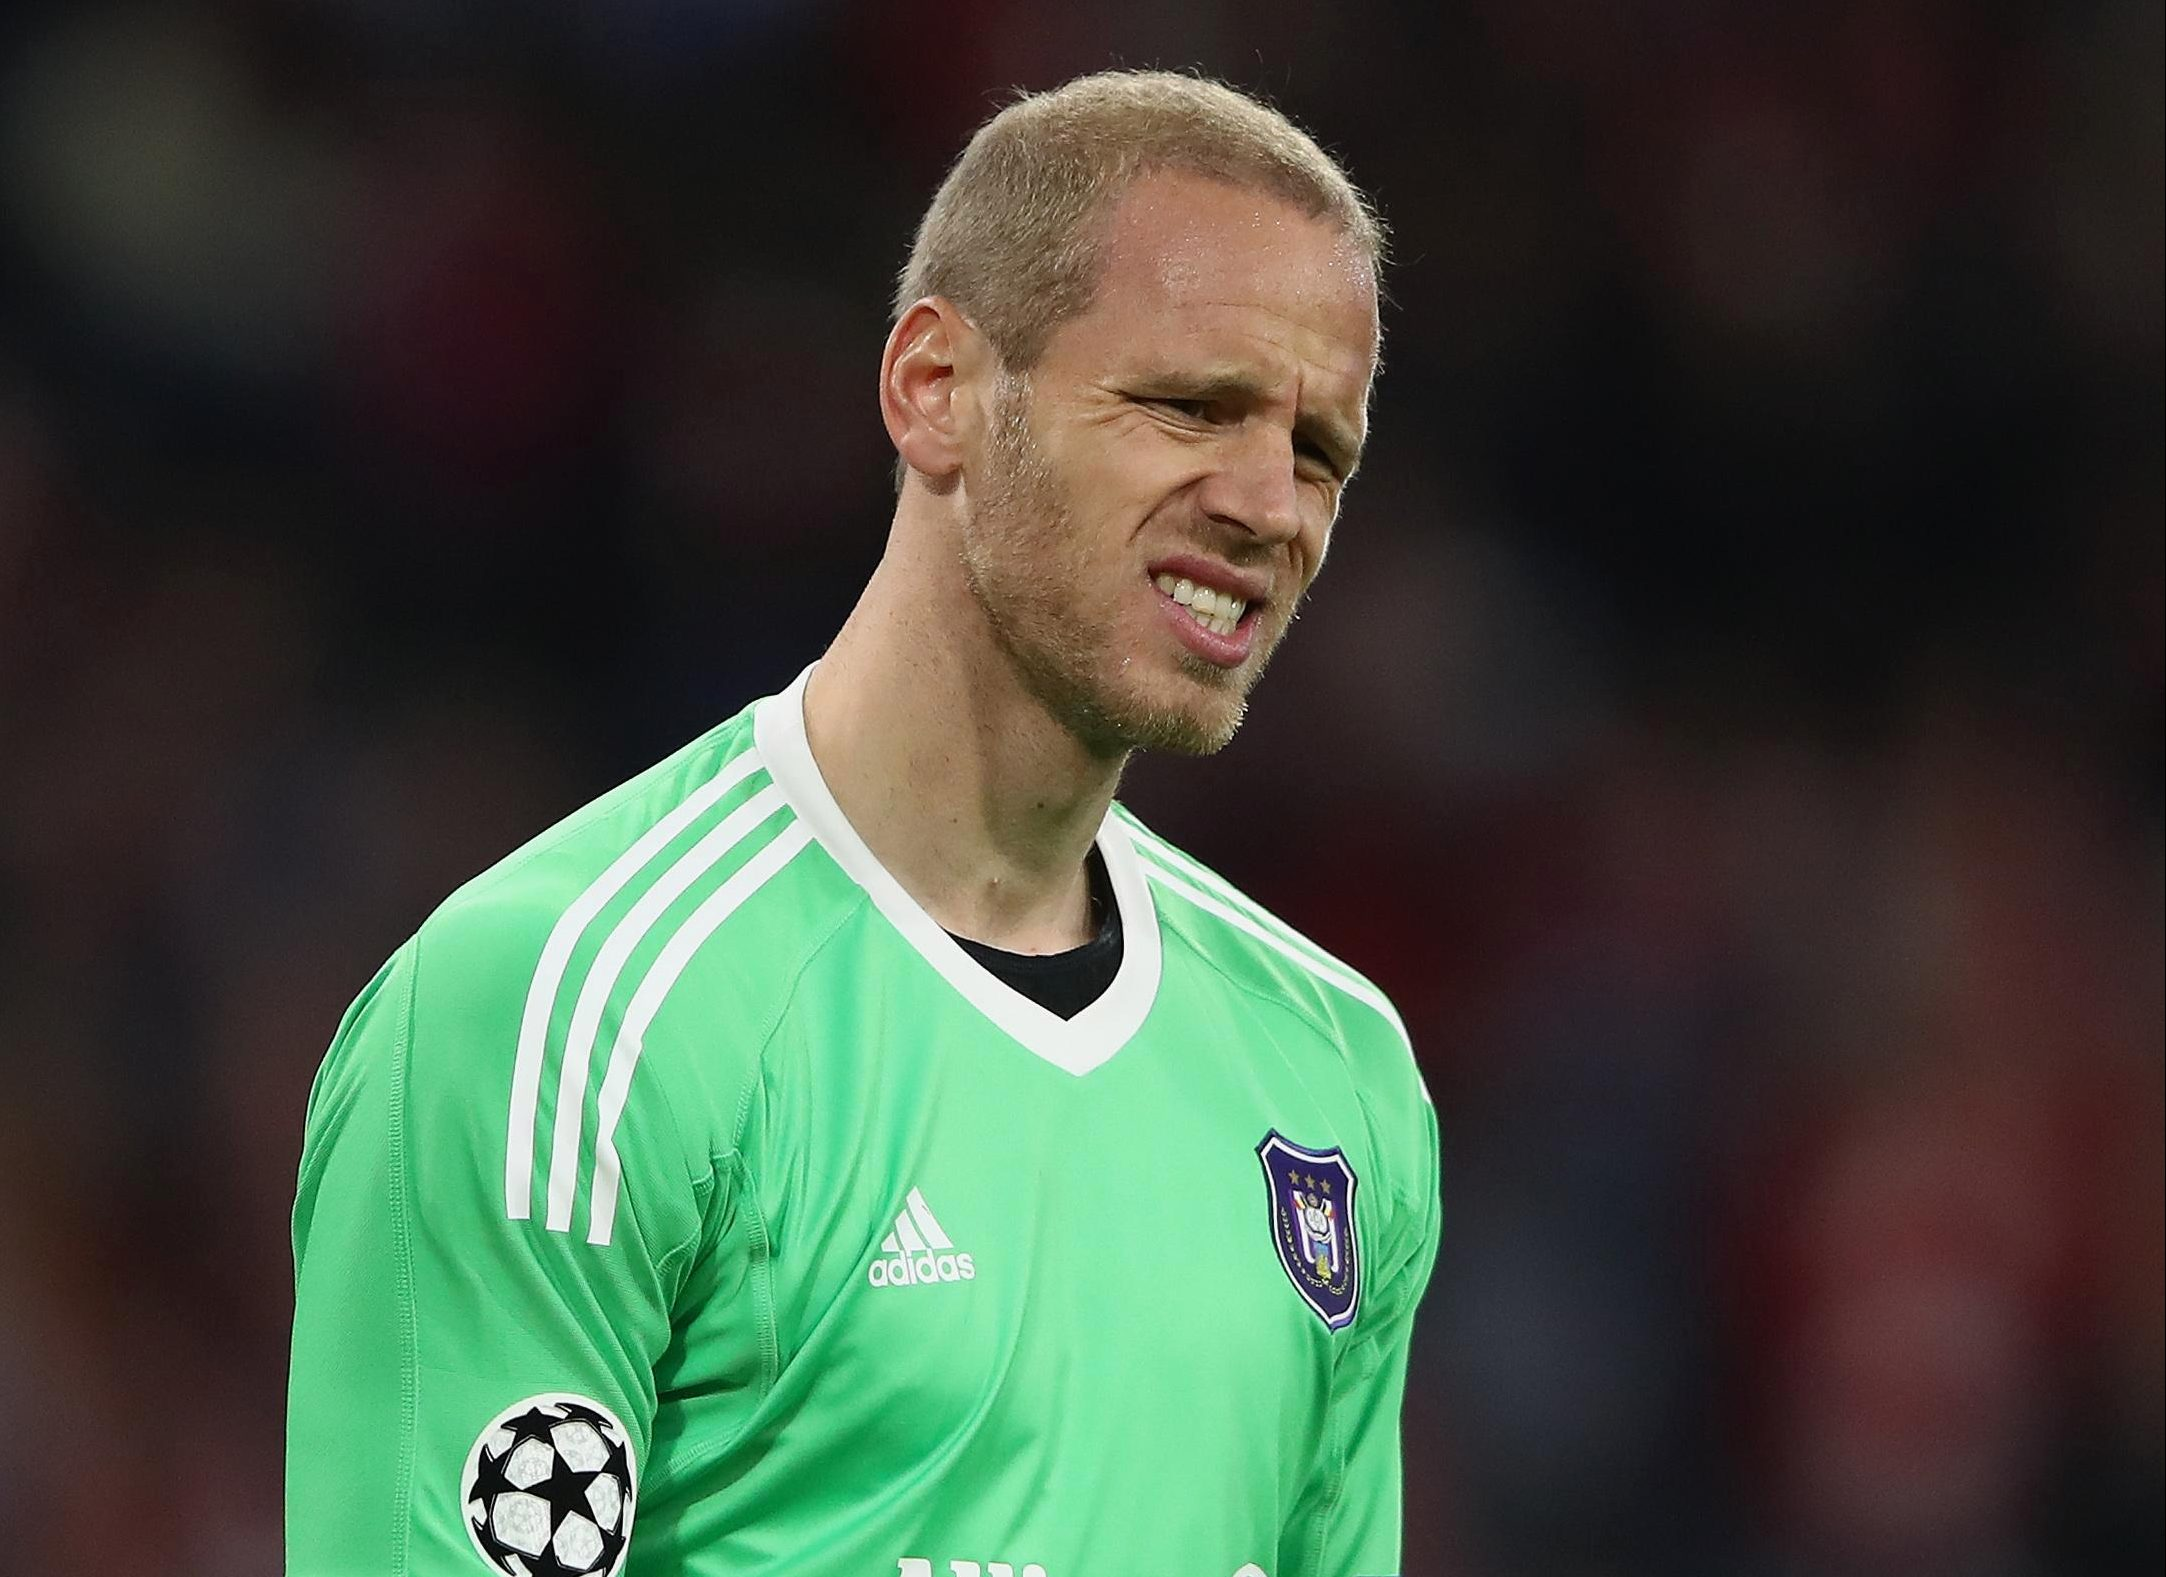 Anderlecht have offered Newcastle £1.75million to sign Matz Sels